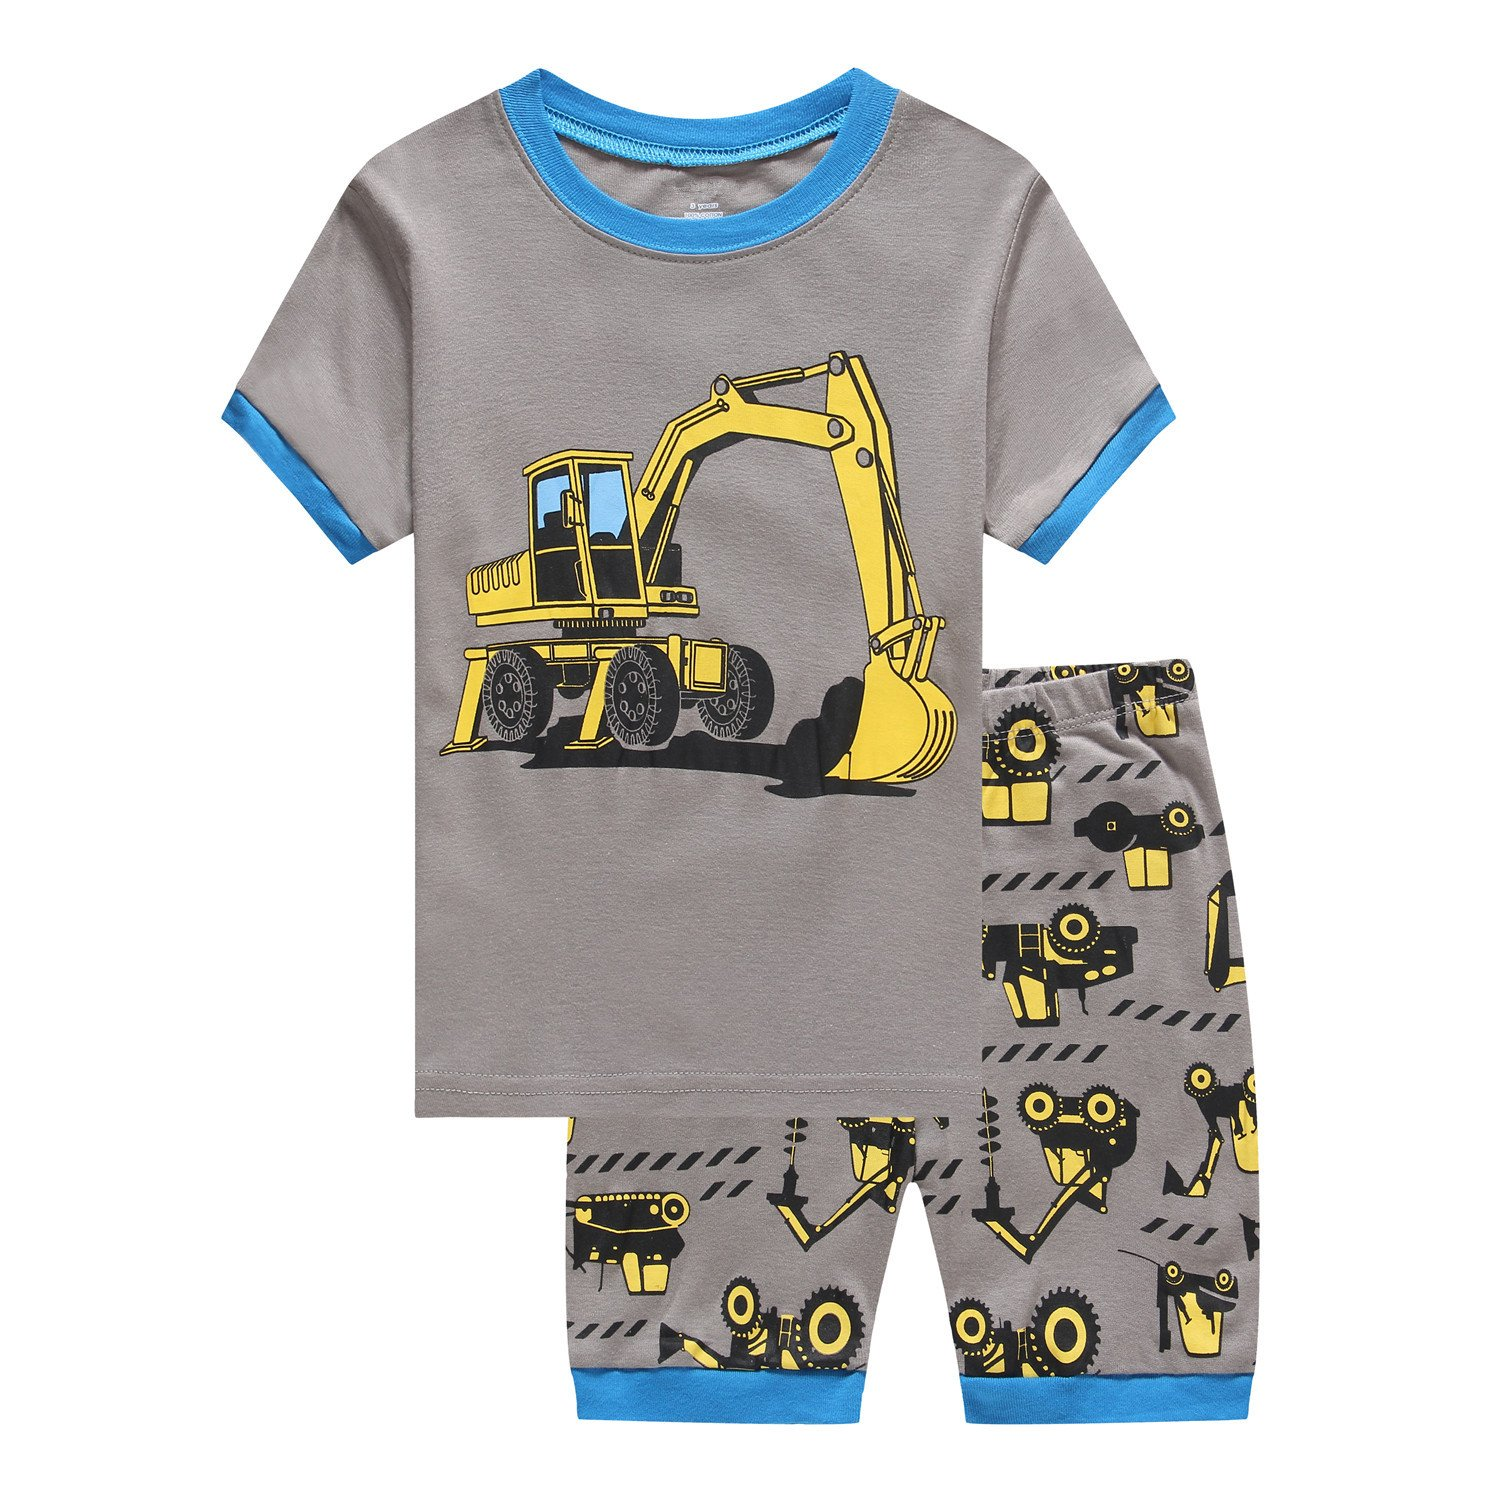 Cczmfeas Boys Short Pajamas Set Children Cartoon PJs Kids Long Sleeves Sleepwear 2 Piece